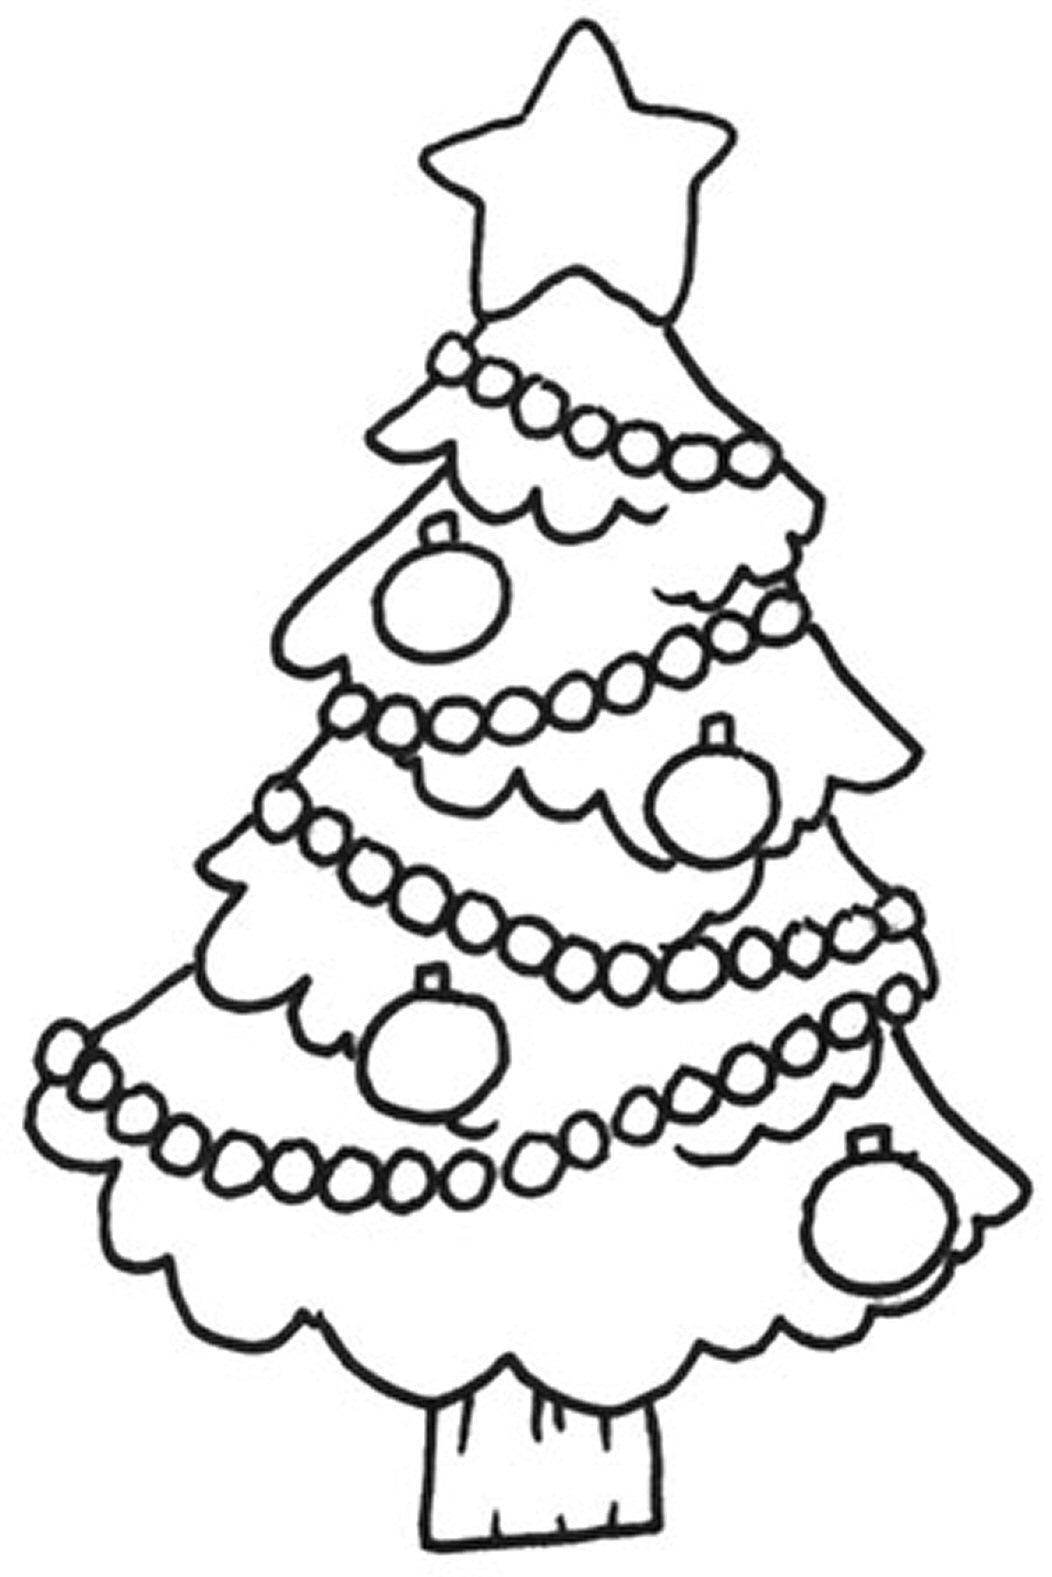 Printable Coloring Pages Christmas Decorations With Free Tree For Kids